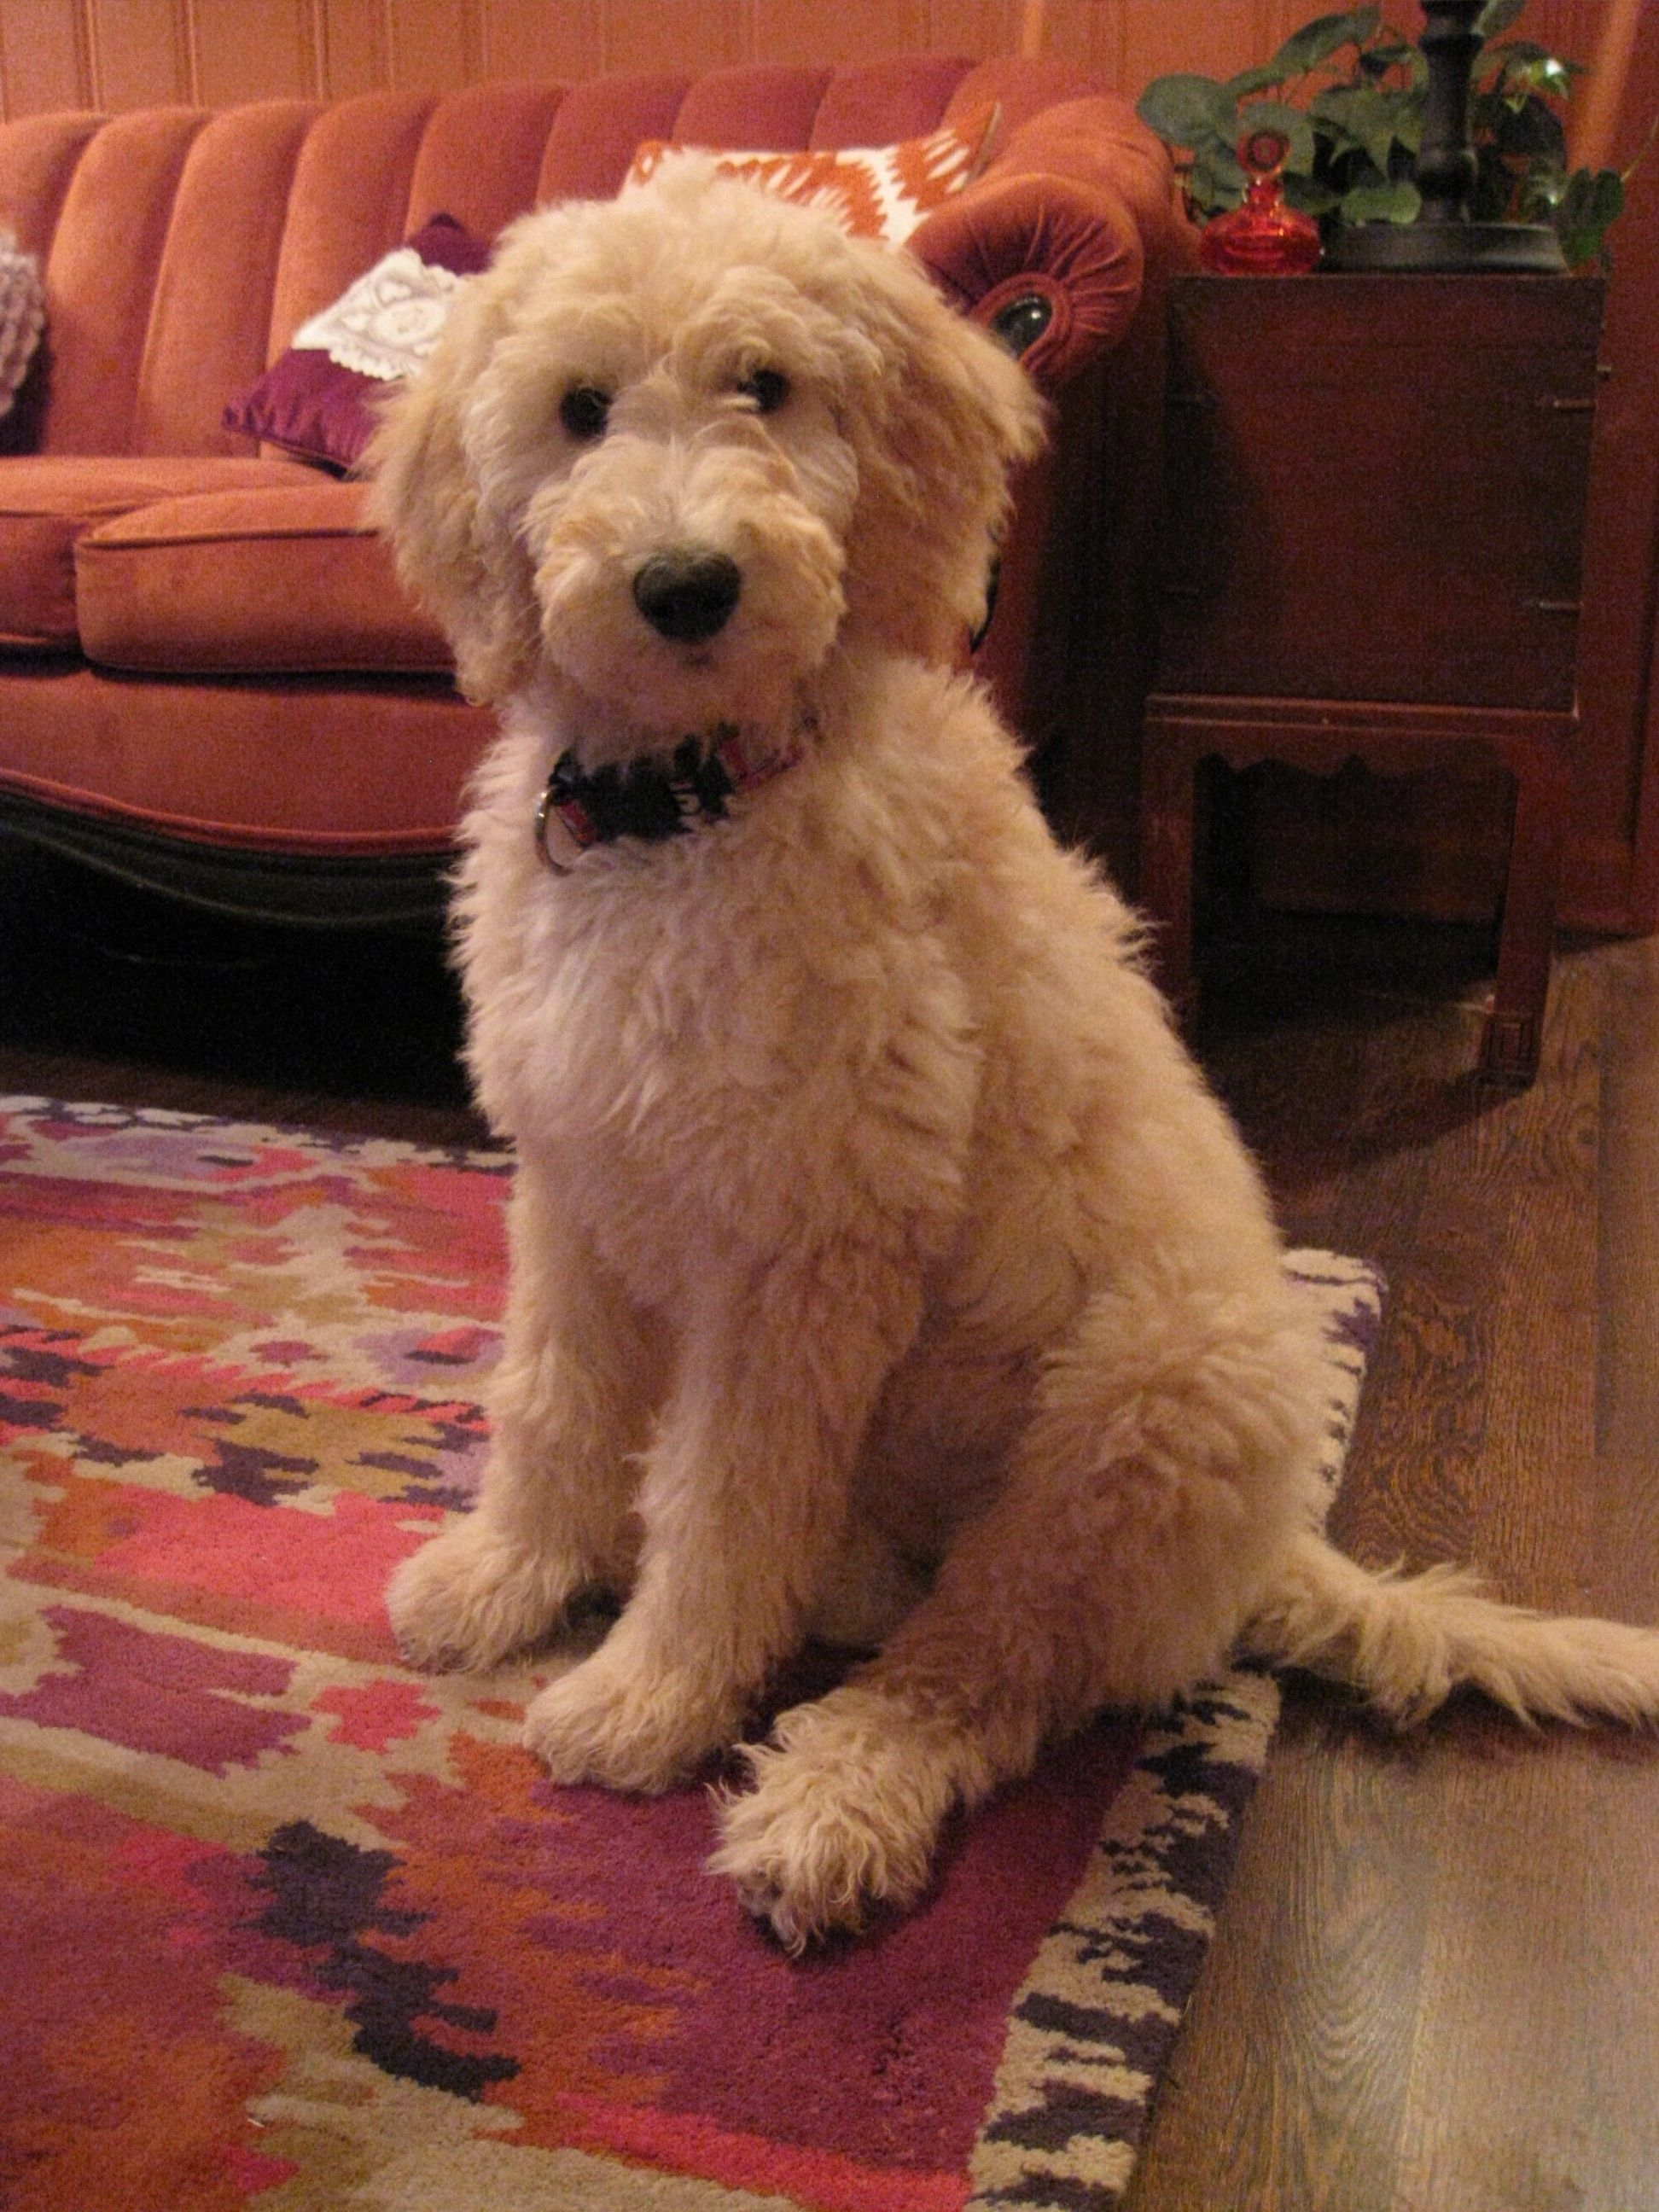 goldendoodle haircuts golden doodle haircut doggie stuff am i the cutest dog ever made why yes yes i am with